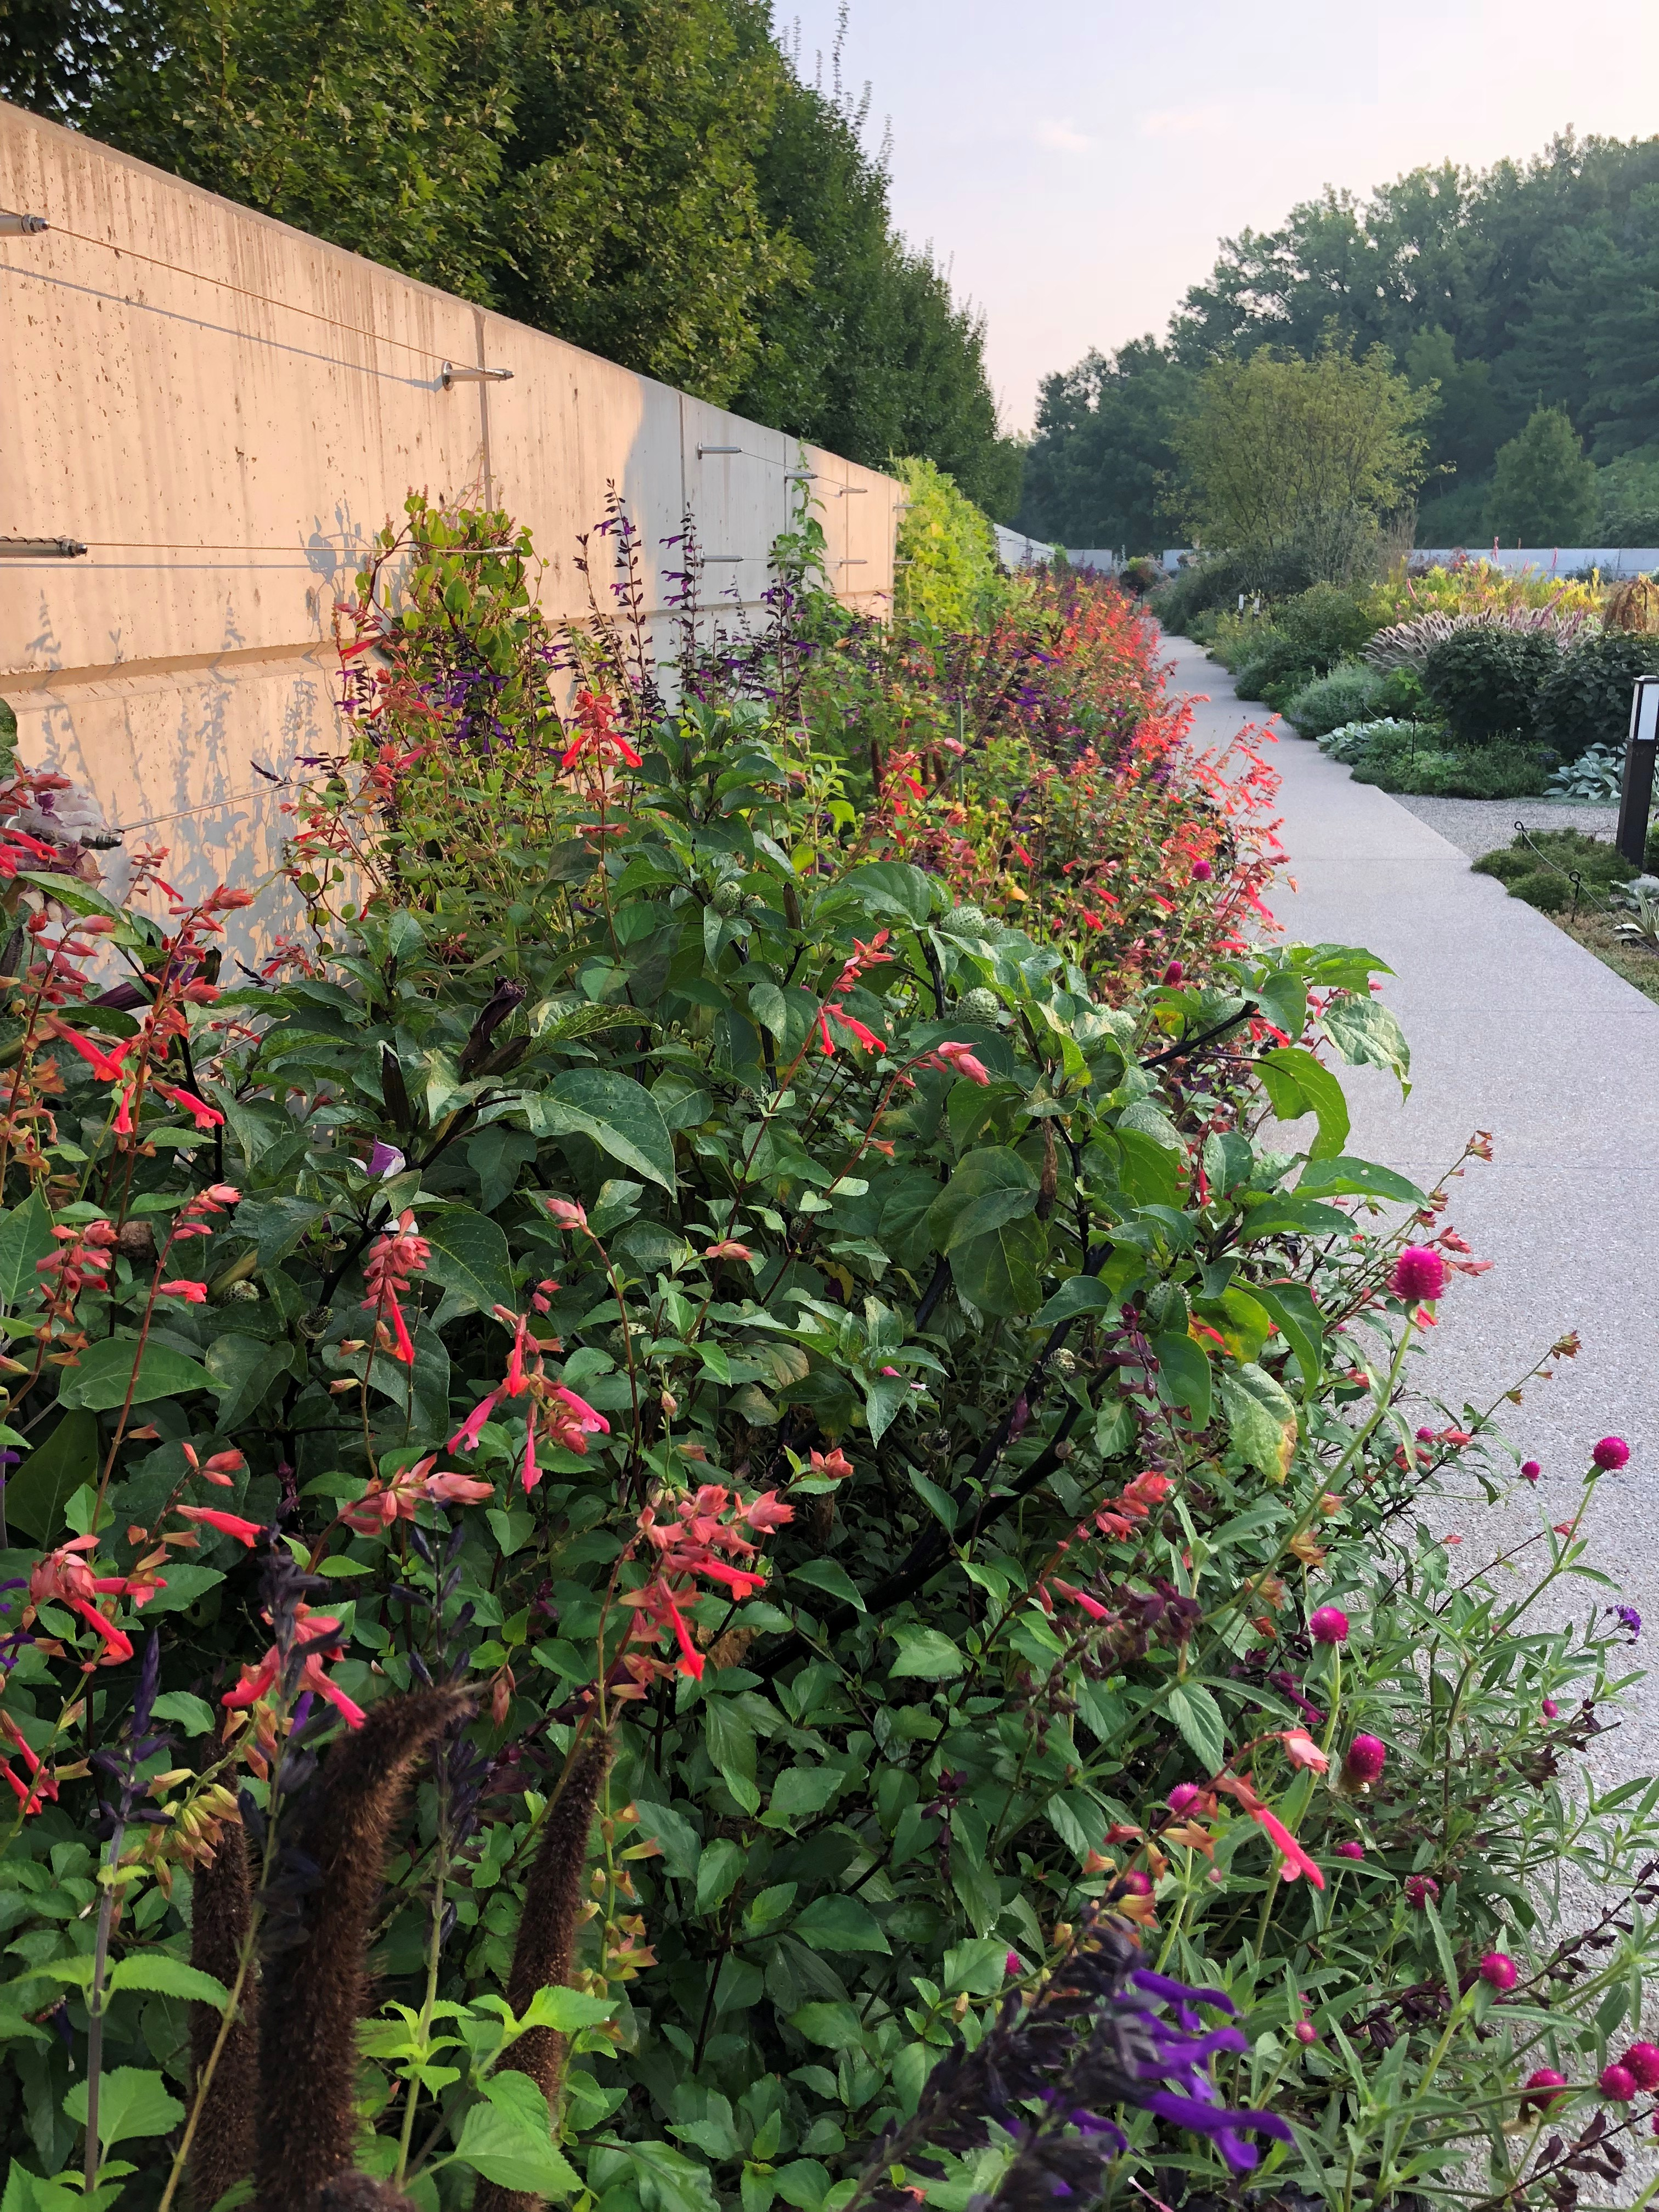 The espalier wall annual planting in August. Photo by Leslie Hunter, Aug. 25.